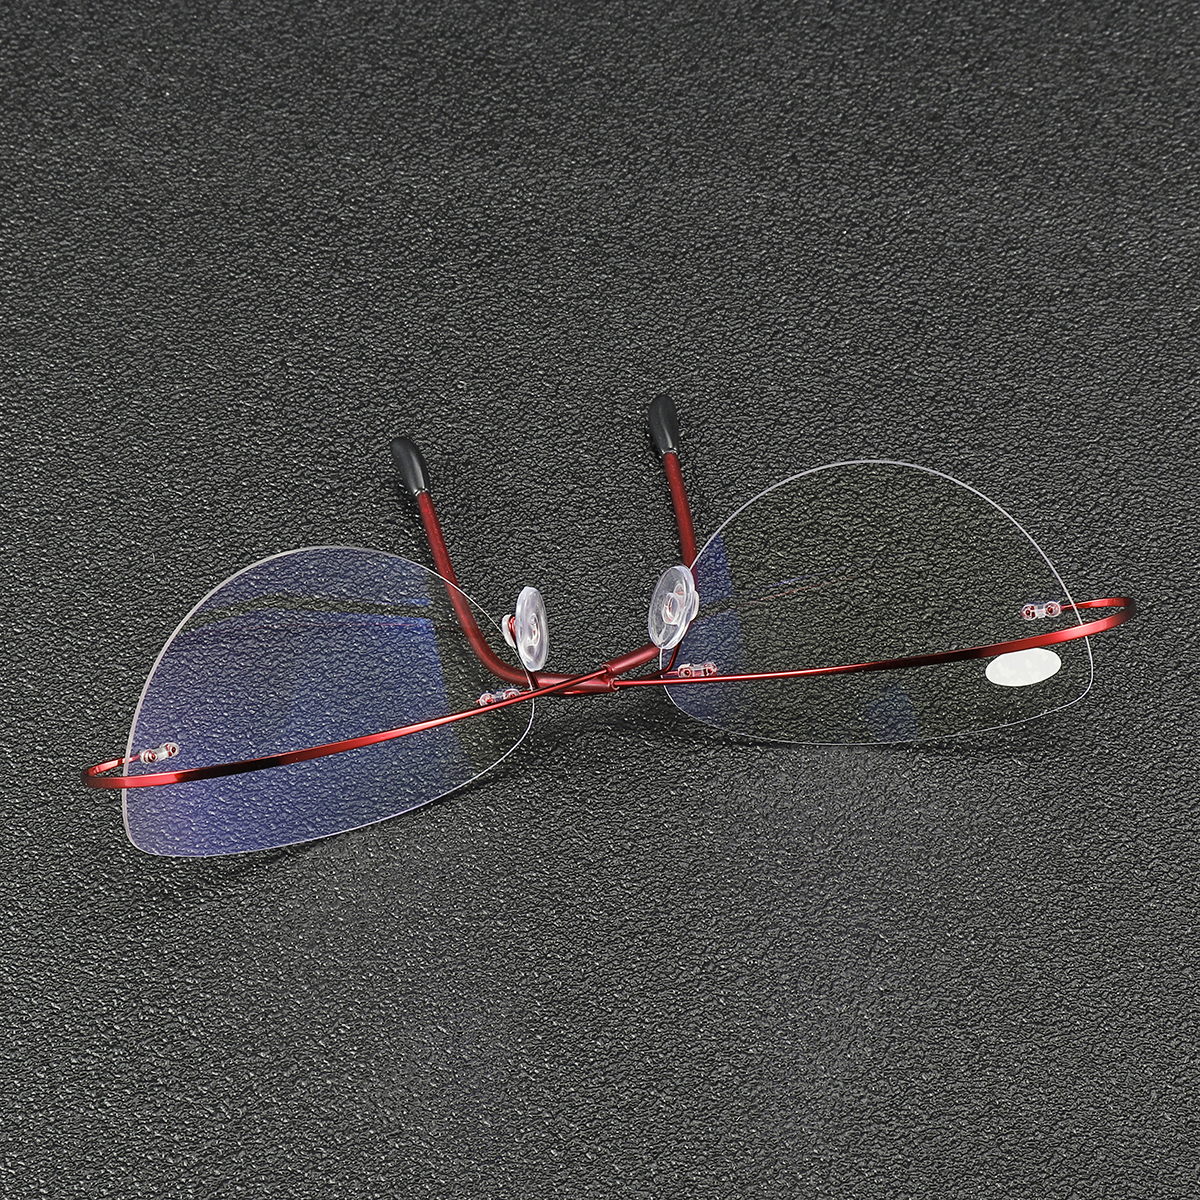 BRAODISON Presbyopic Reading Glasses